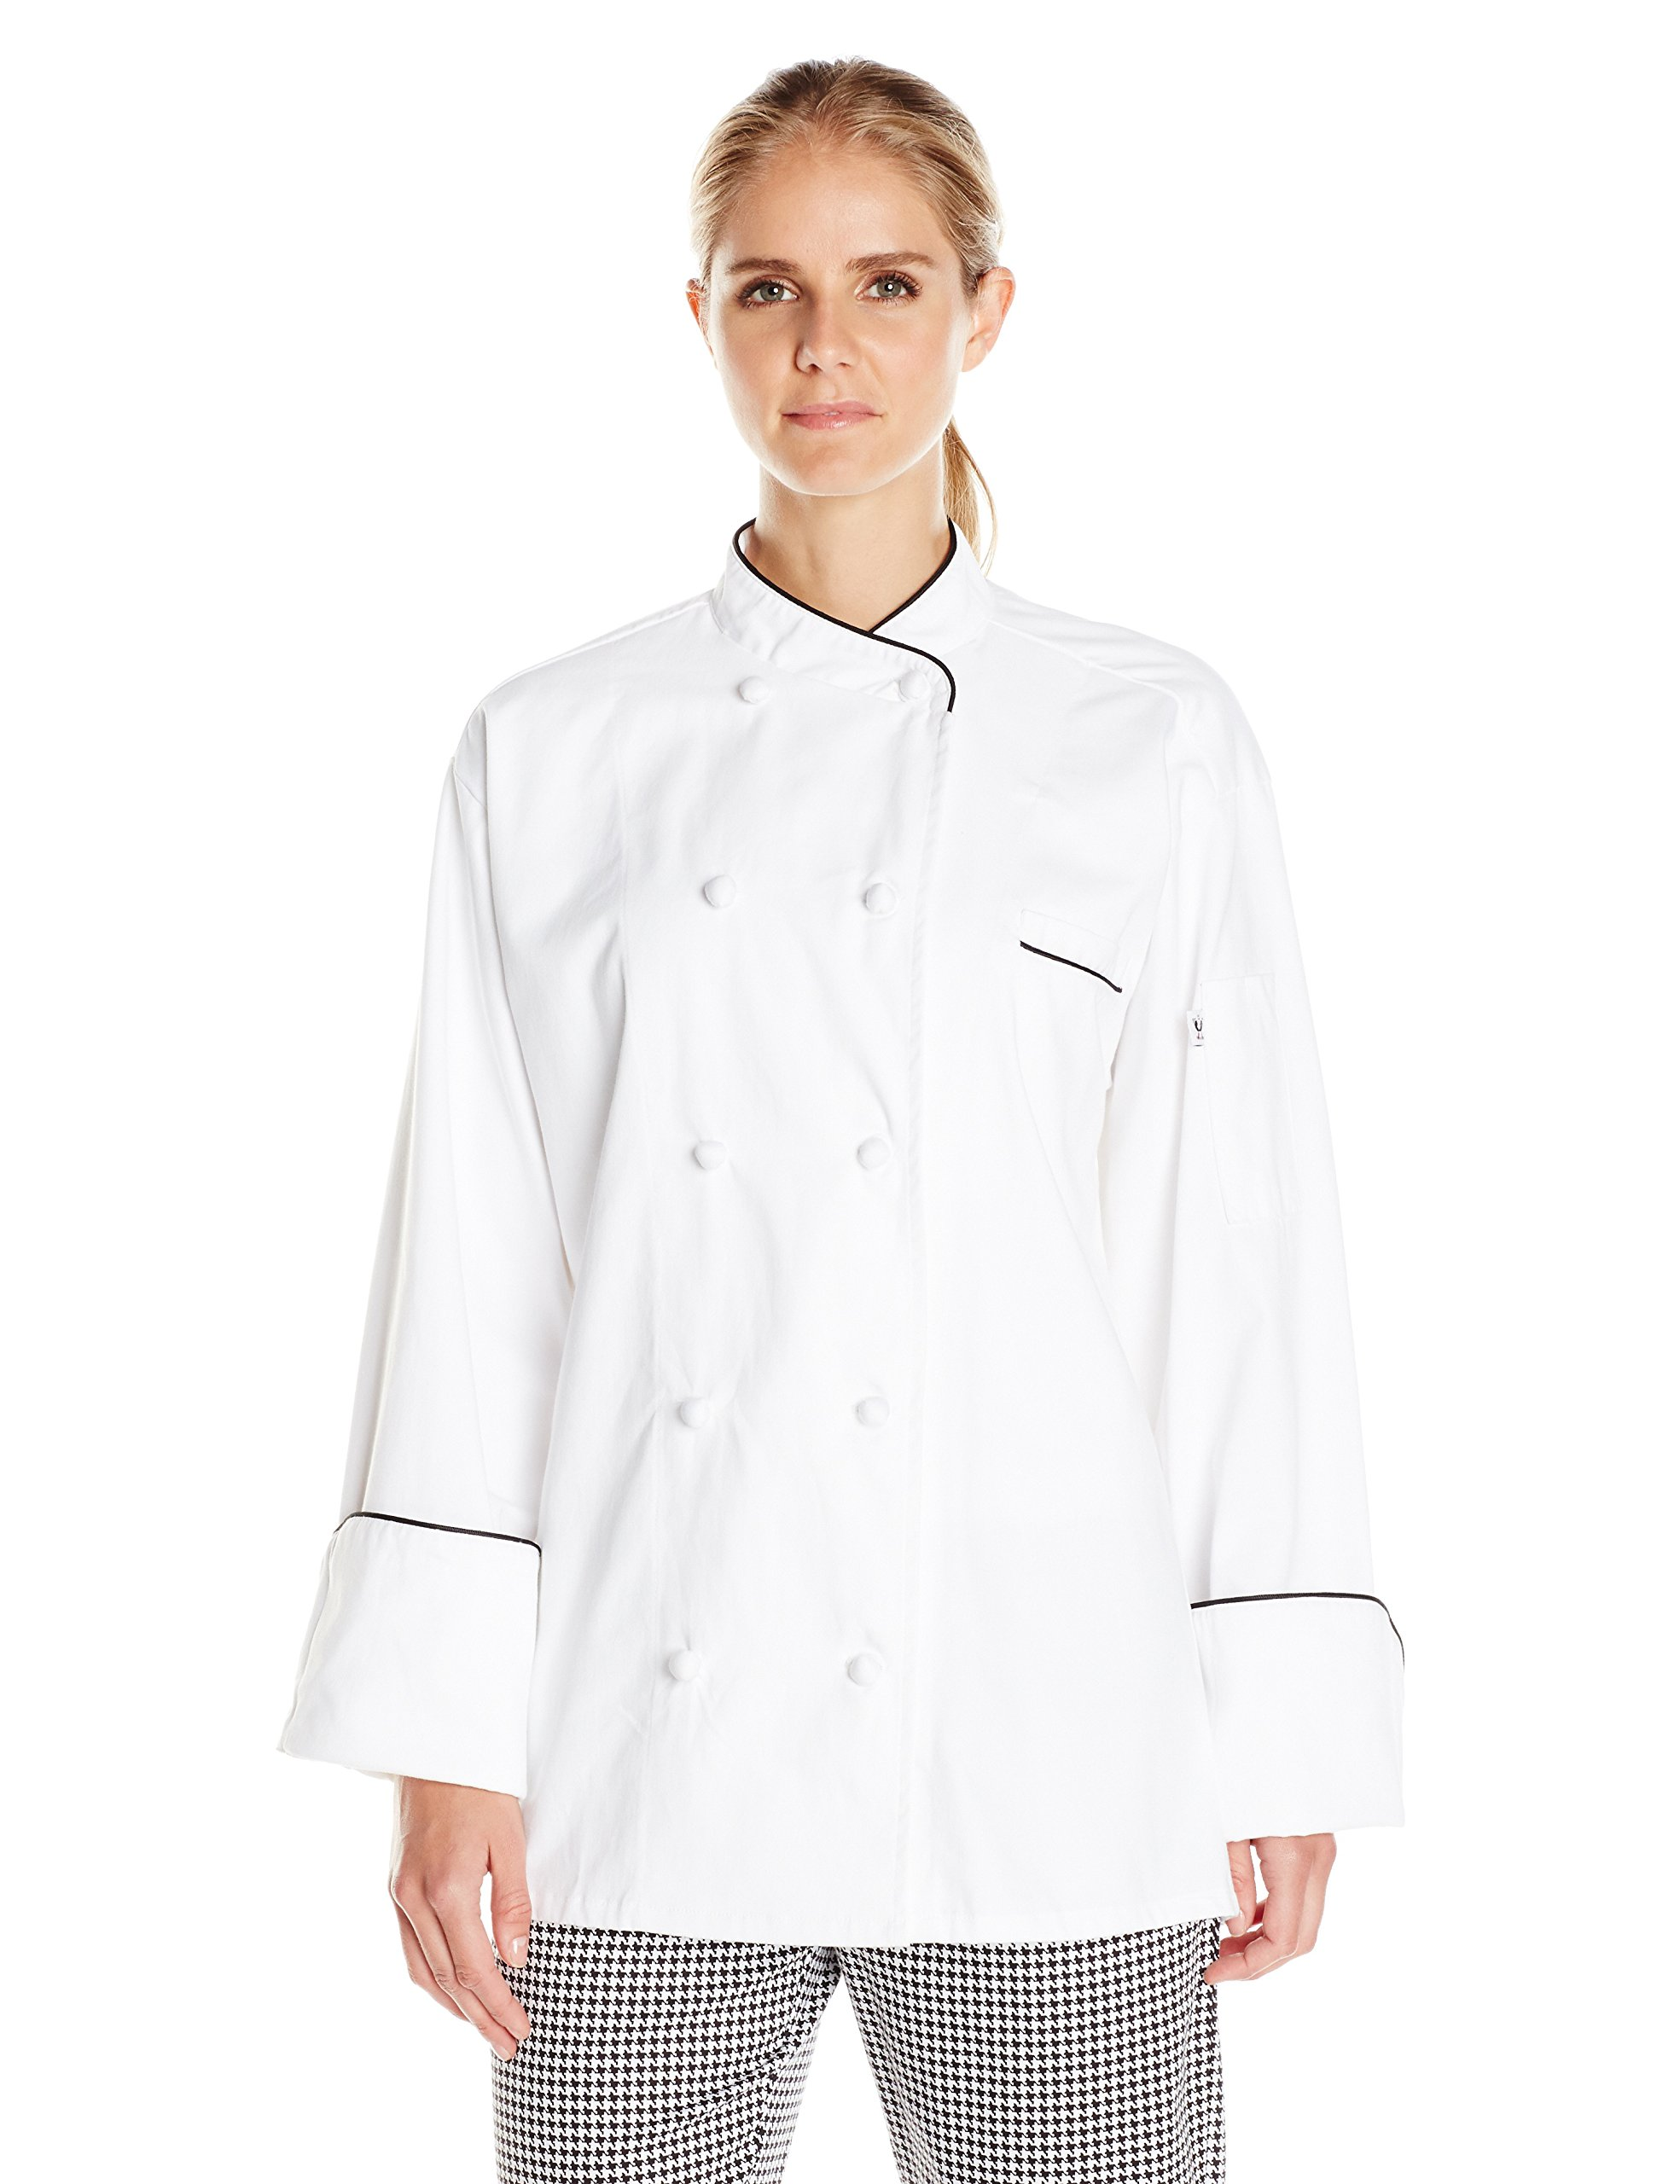 Uncommon Threads Unisex  San Marco, White/Black Piping, X-Small